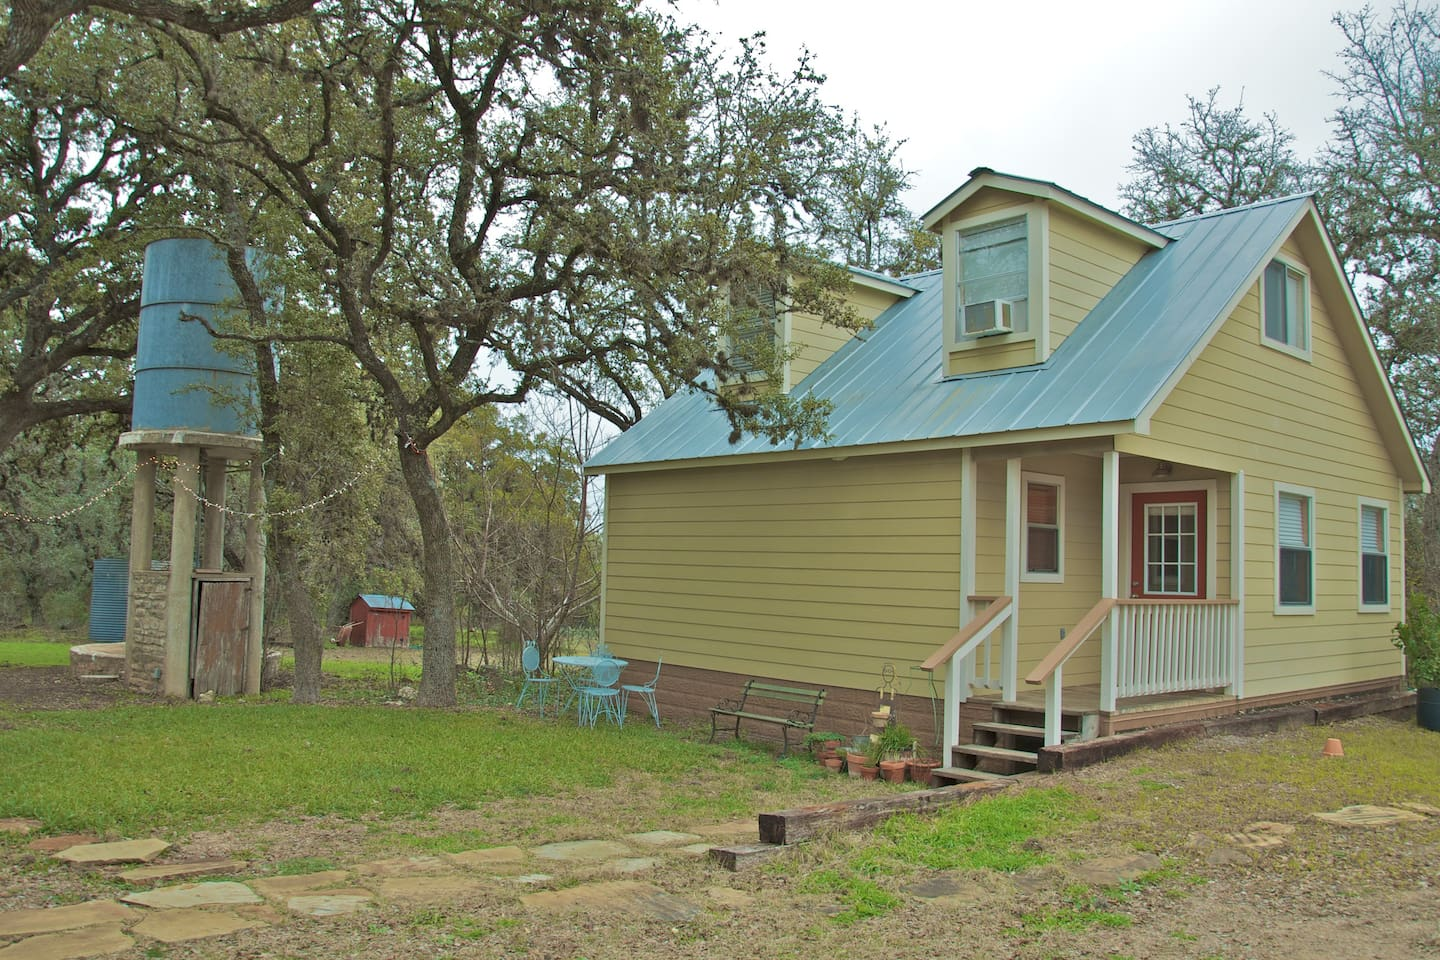 sale rentals vacation river for log drobek cottages hill cabins country wimberley info texas